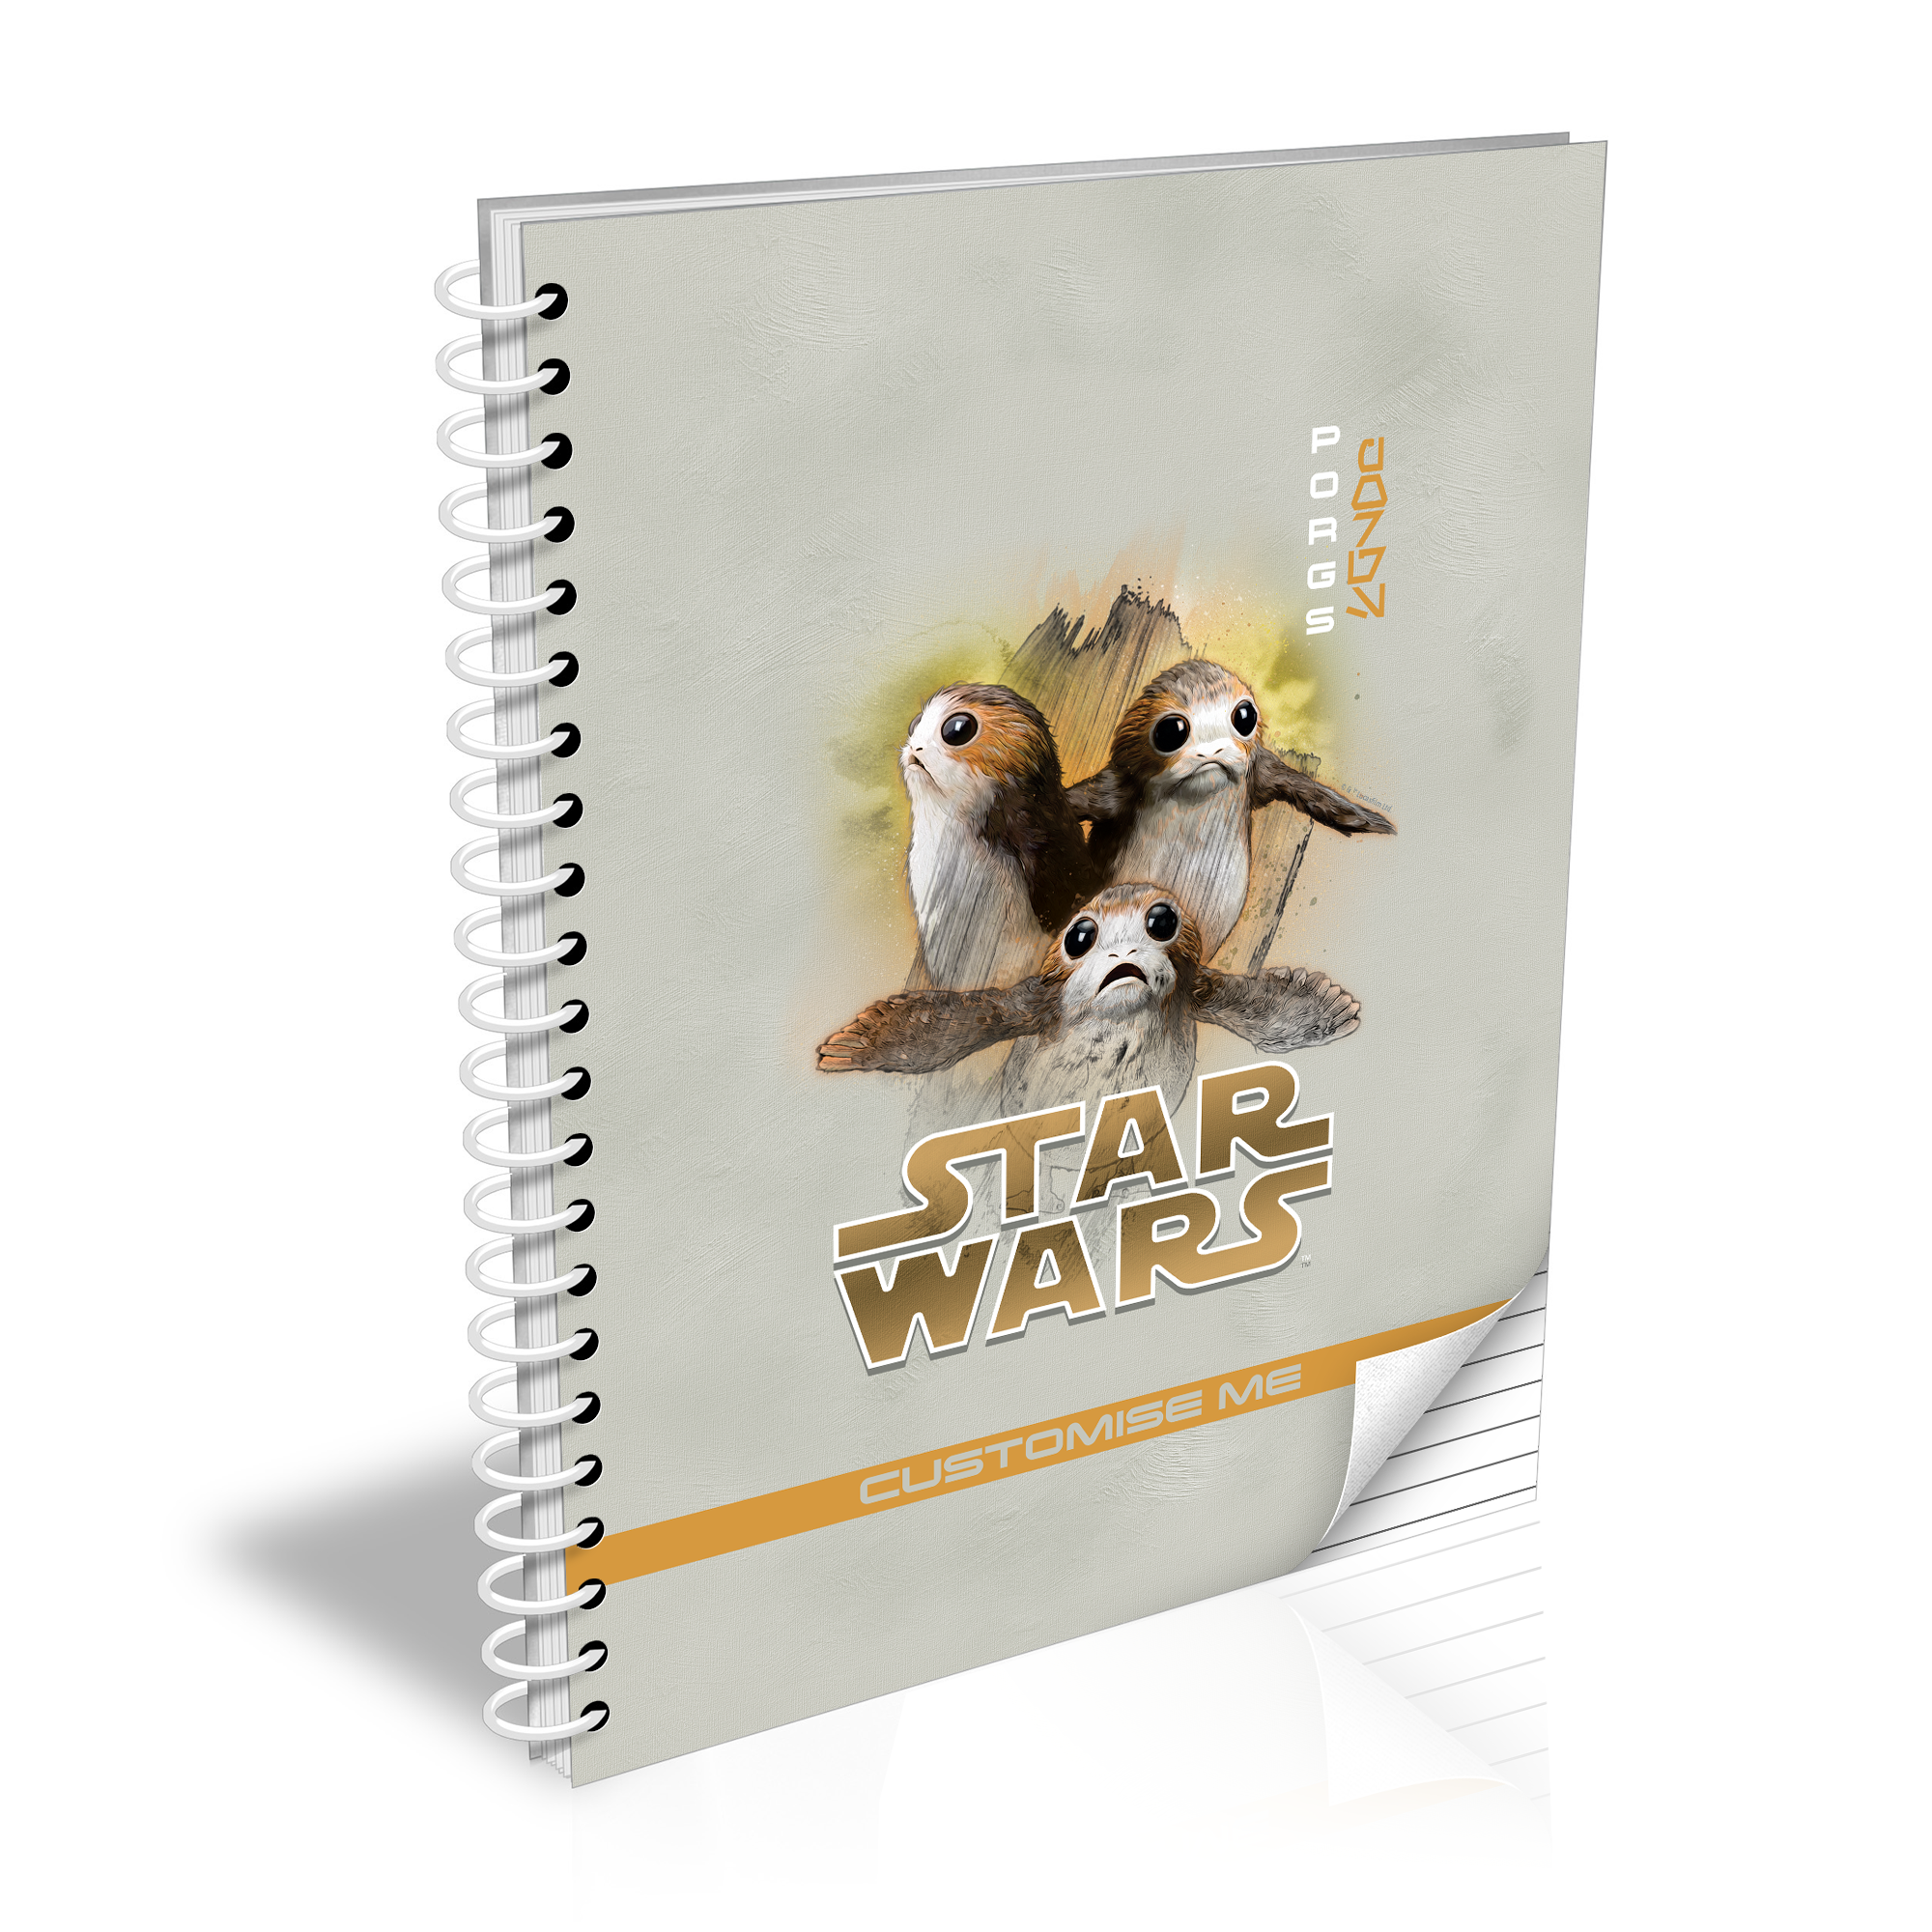 Star Wars Porg Last Jedi Spray Paint A5 Notebook